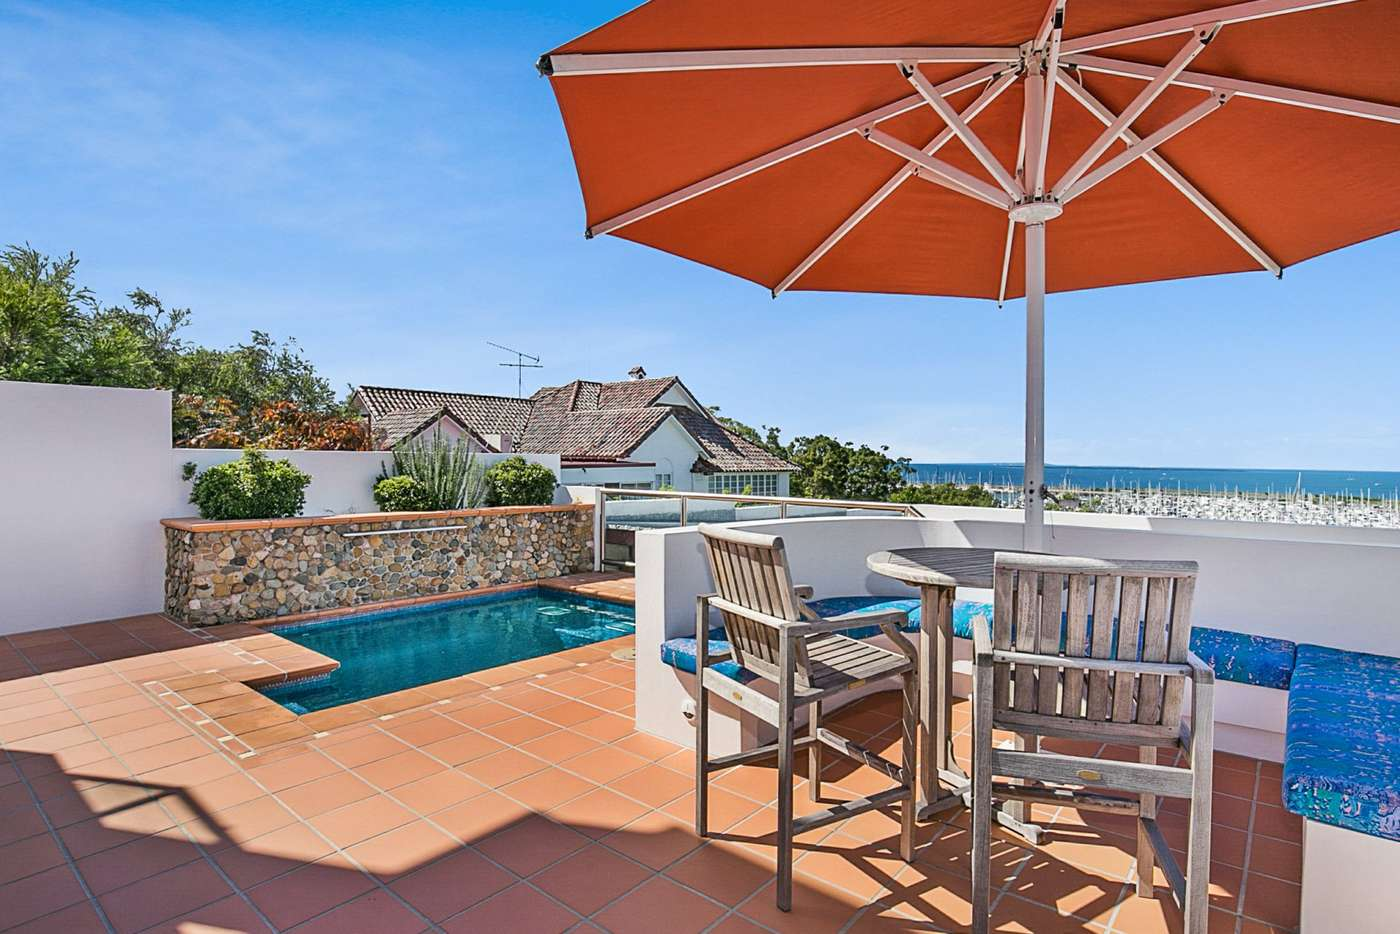 Main view of Homely house listing, 82 Oceana Tce, Manly QLD 4179